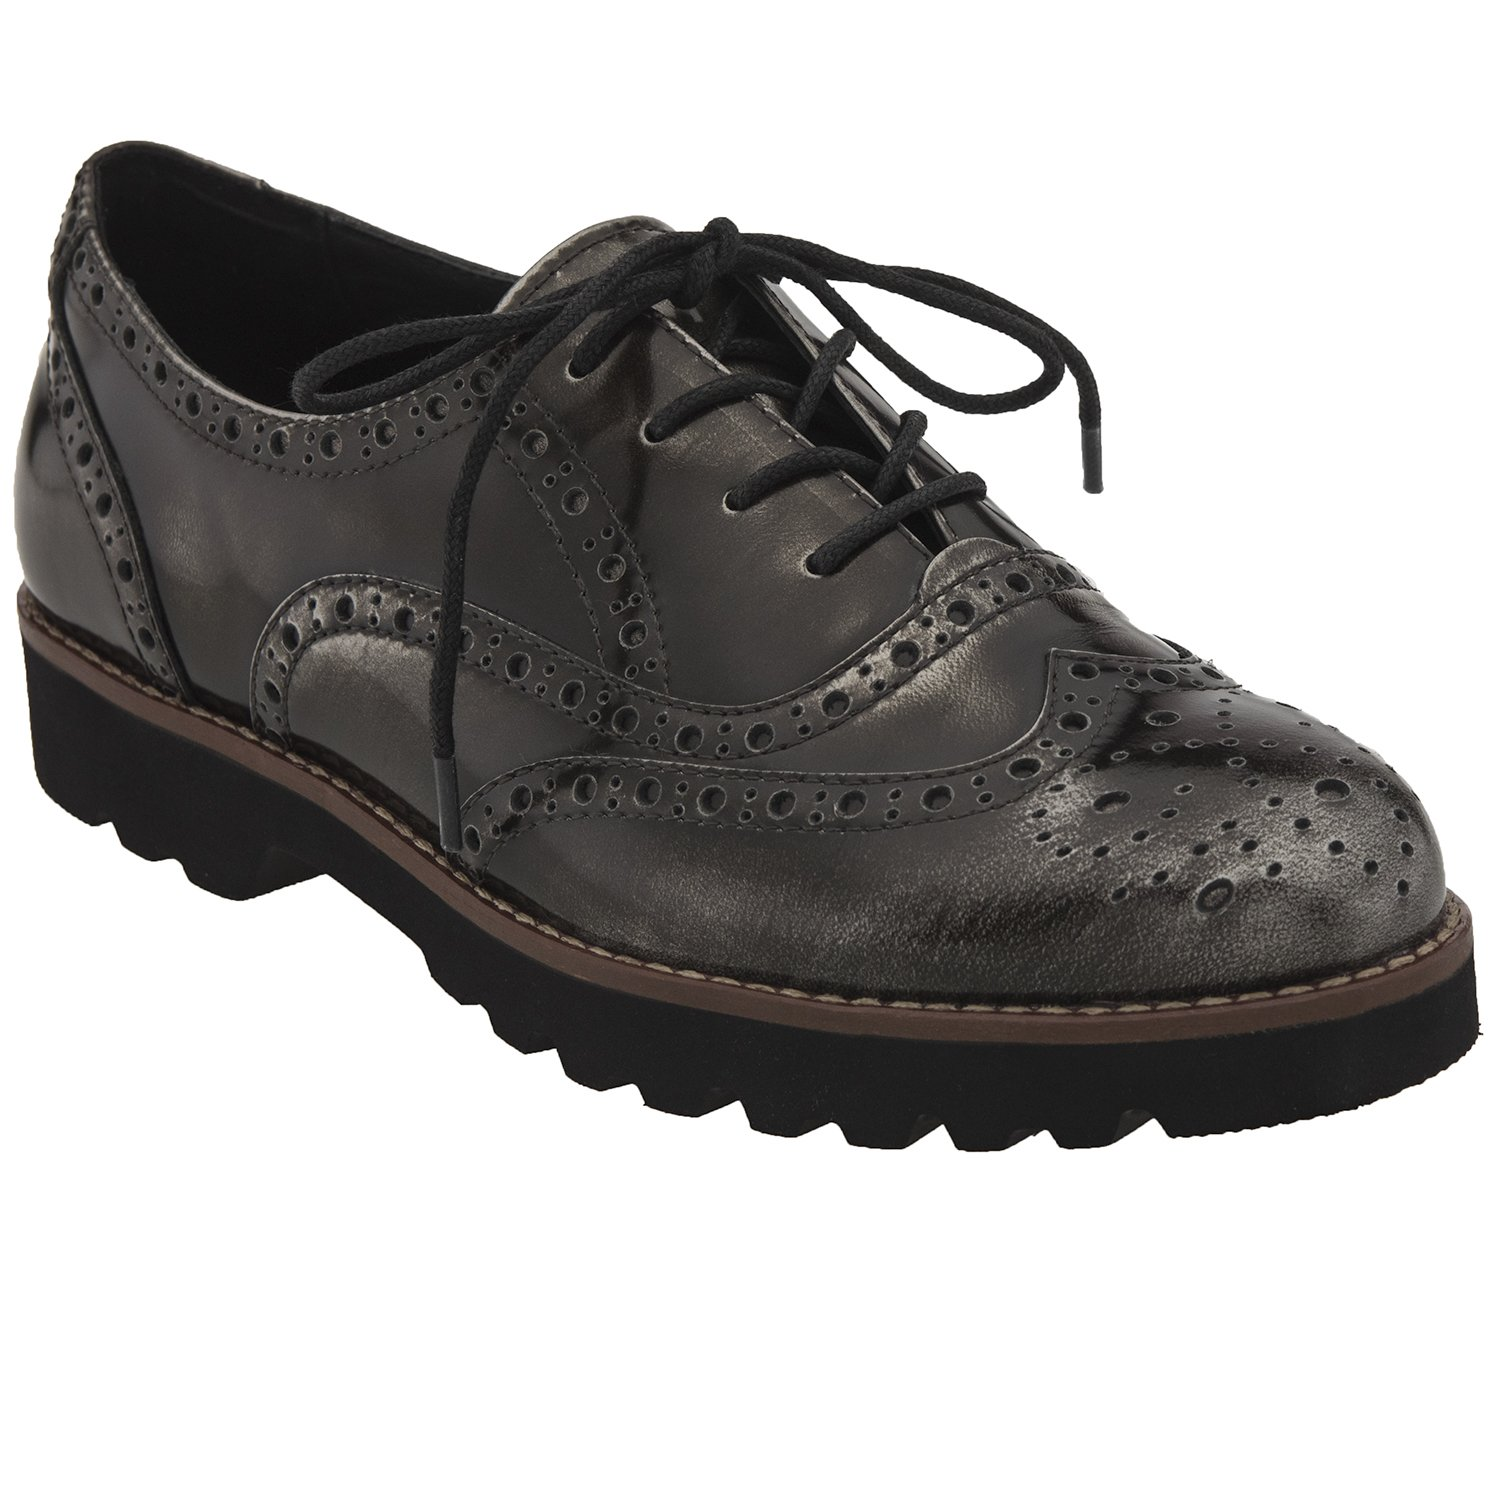 Earthies Women's Pewter Brush Off Leather Santana 8 Medium US